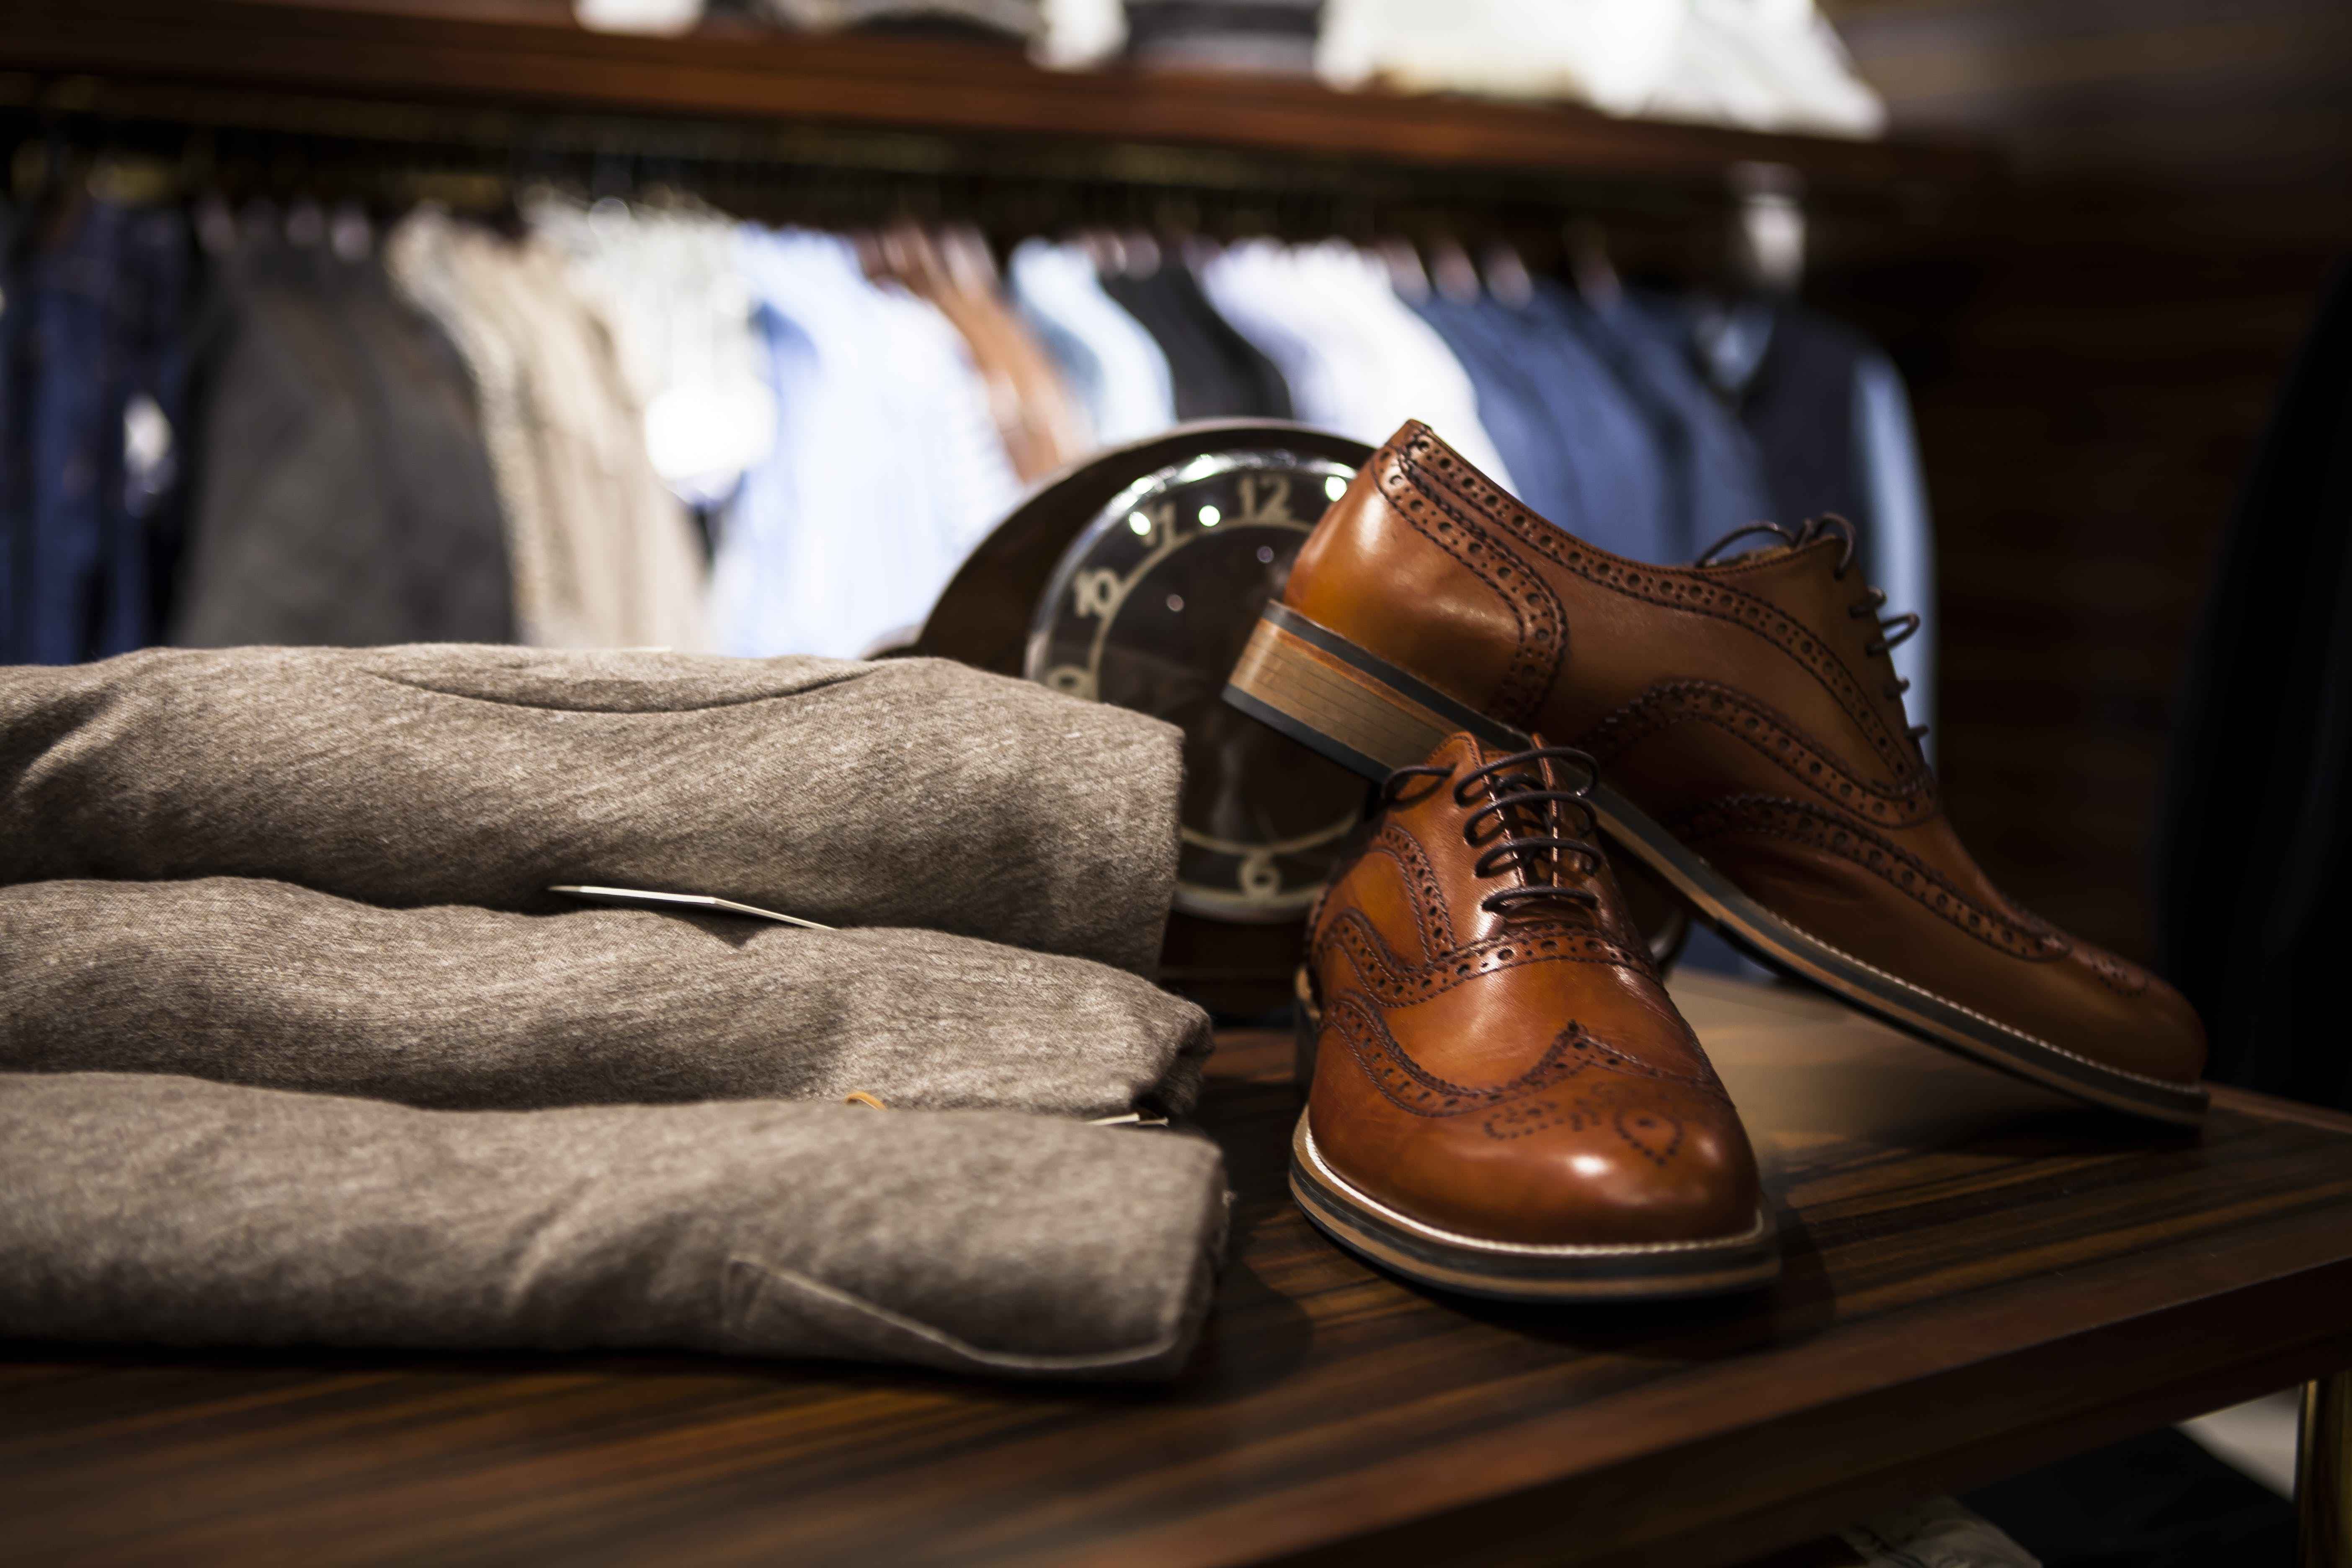 Pair of Brown Leather Wingtip Shoes Beside Gray Apparel on Wooden Surface